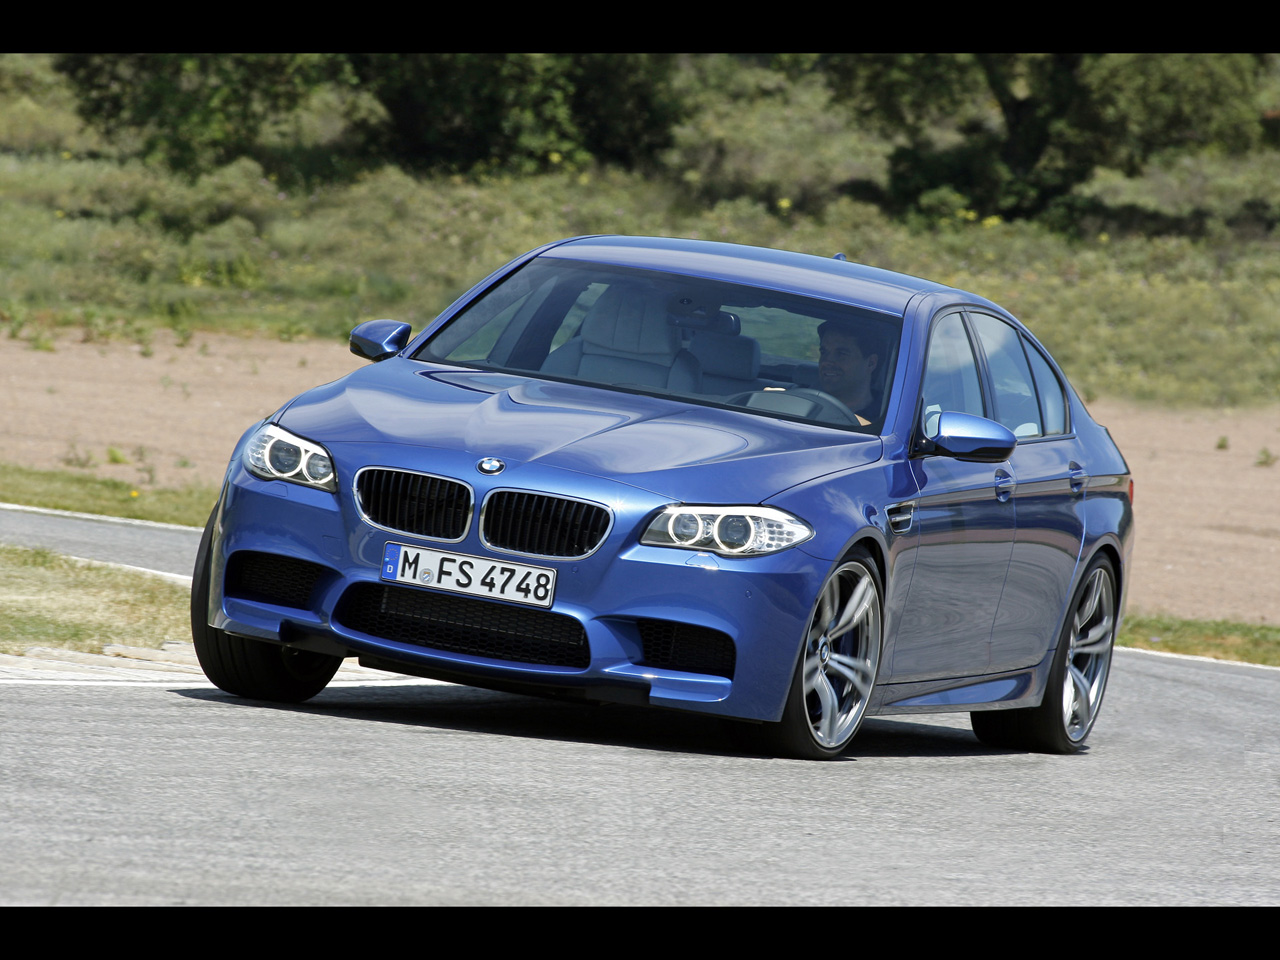 2012 bmw m5 pictures specifications and information. Black Bedroom Furniture Sets. Home Design Ideas